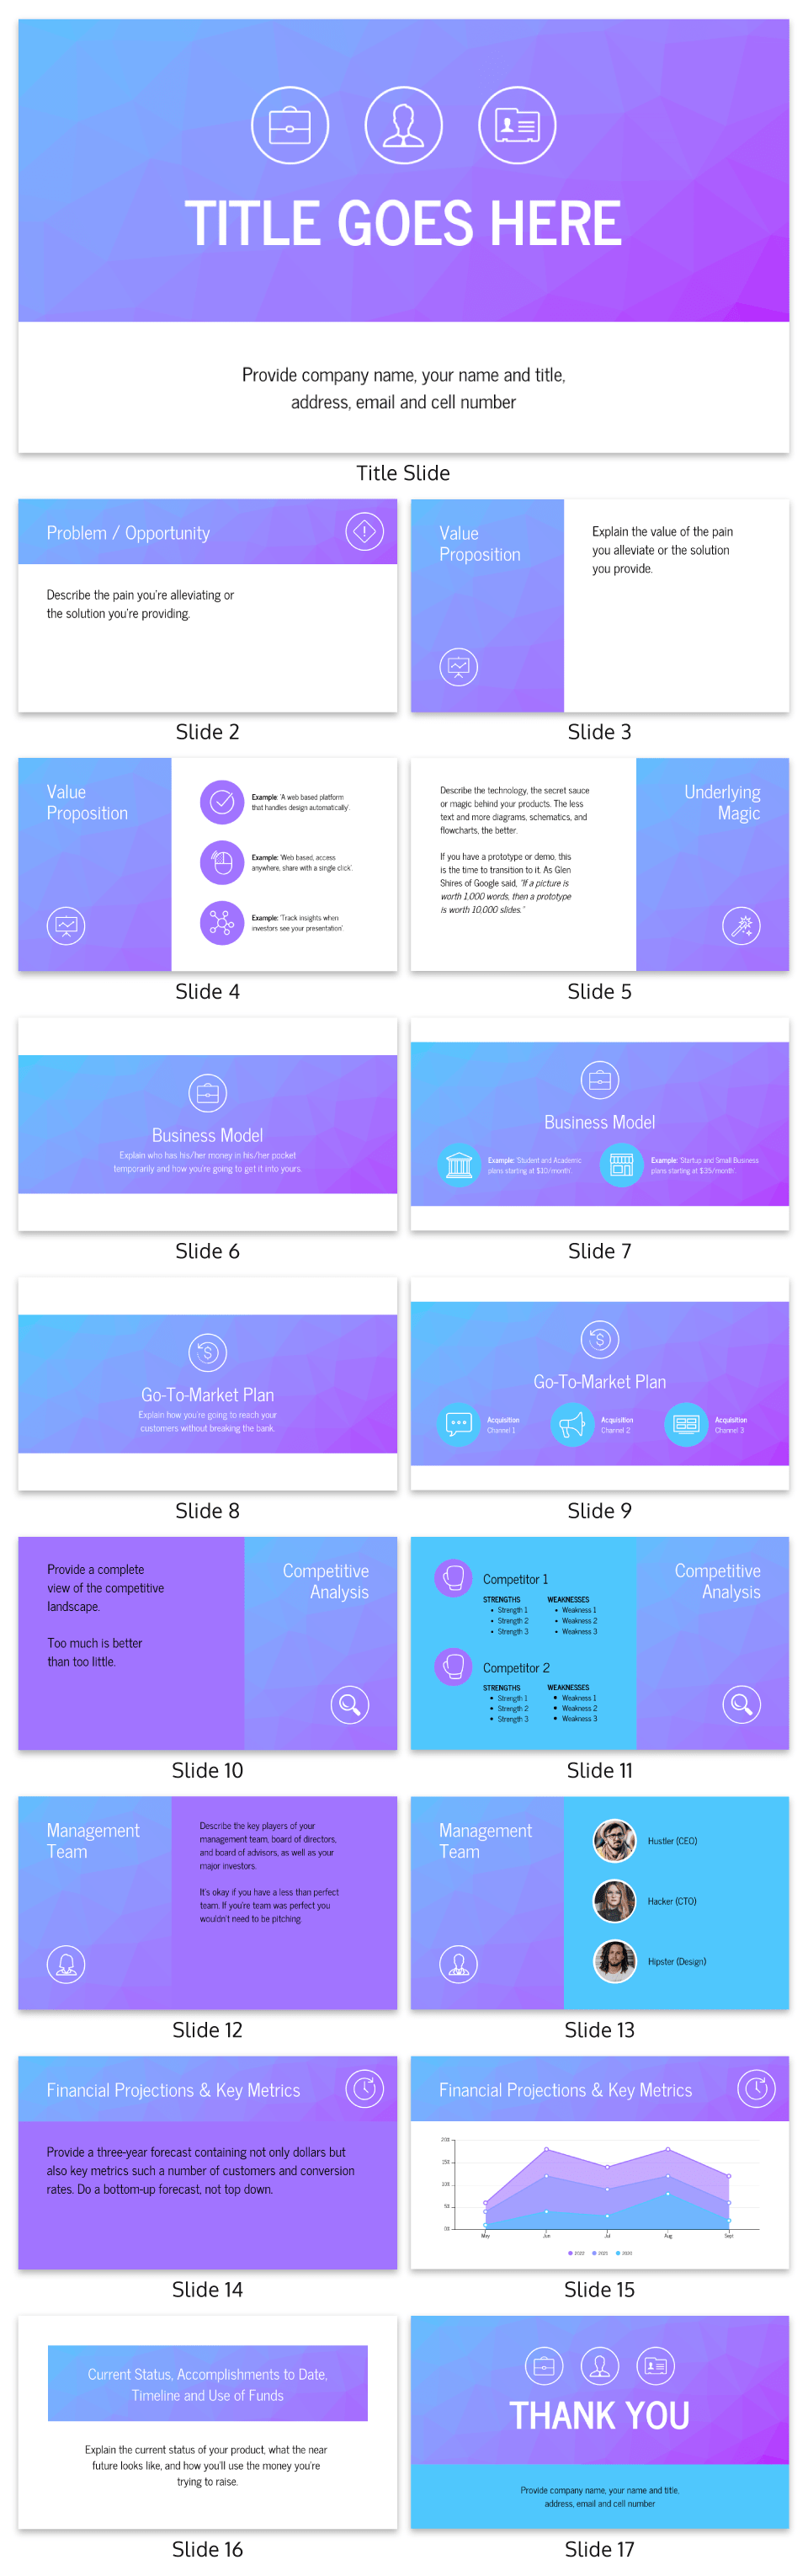 Gradient Guy Kawasaki Pitch Deck Template